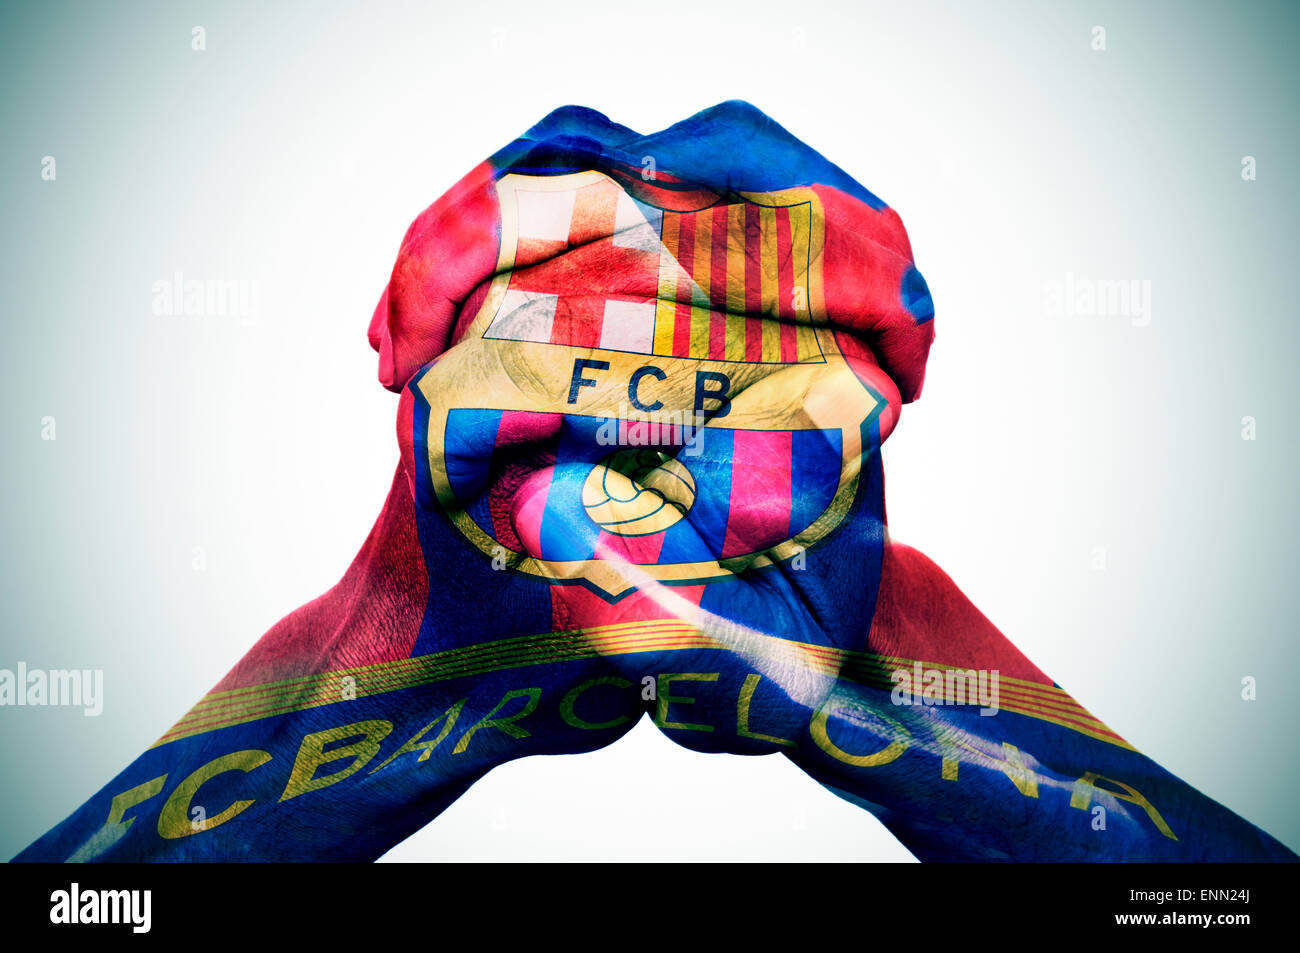 the clasped hands of a young man patterned with the flag of the Futbol Club Barcelona, also known as Barca - Stock Image